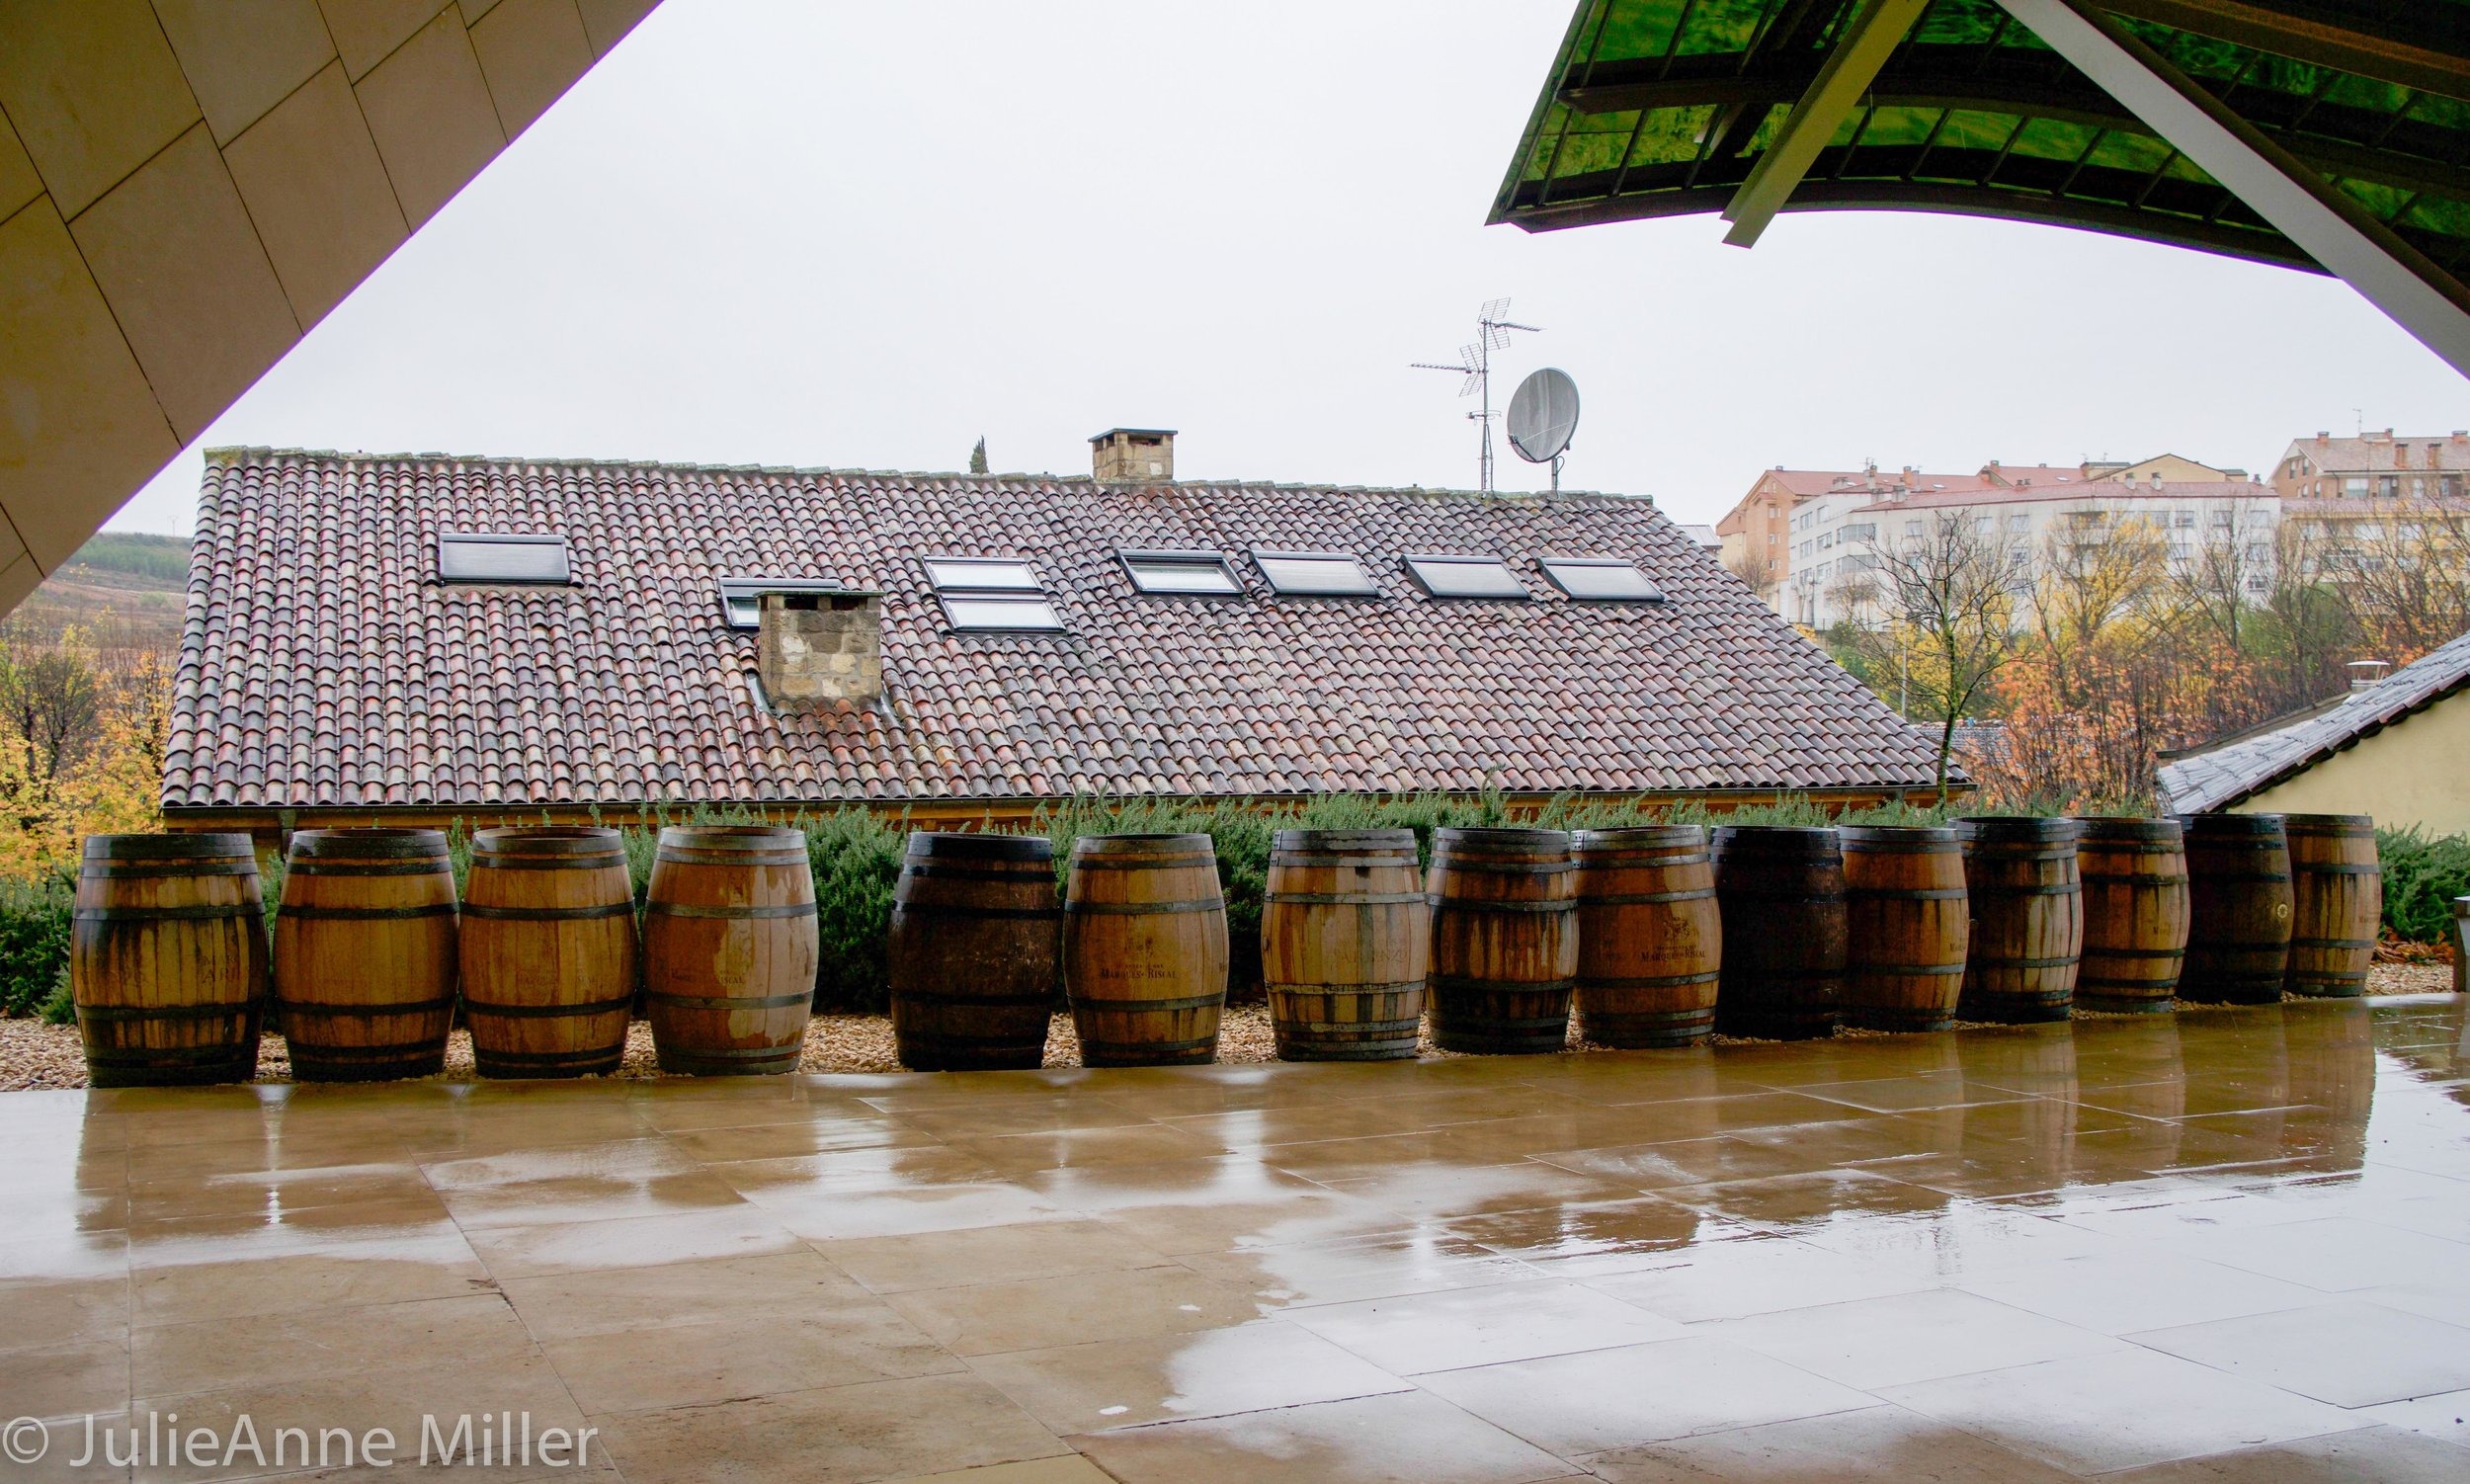 Marques de Riscale winery